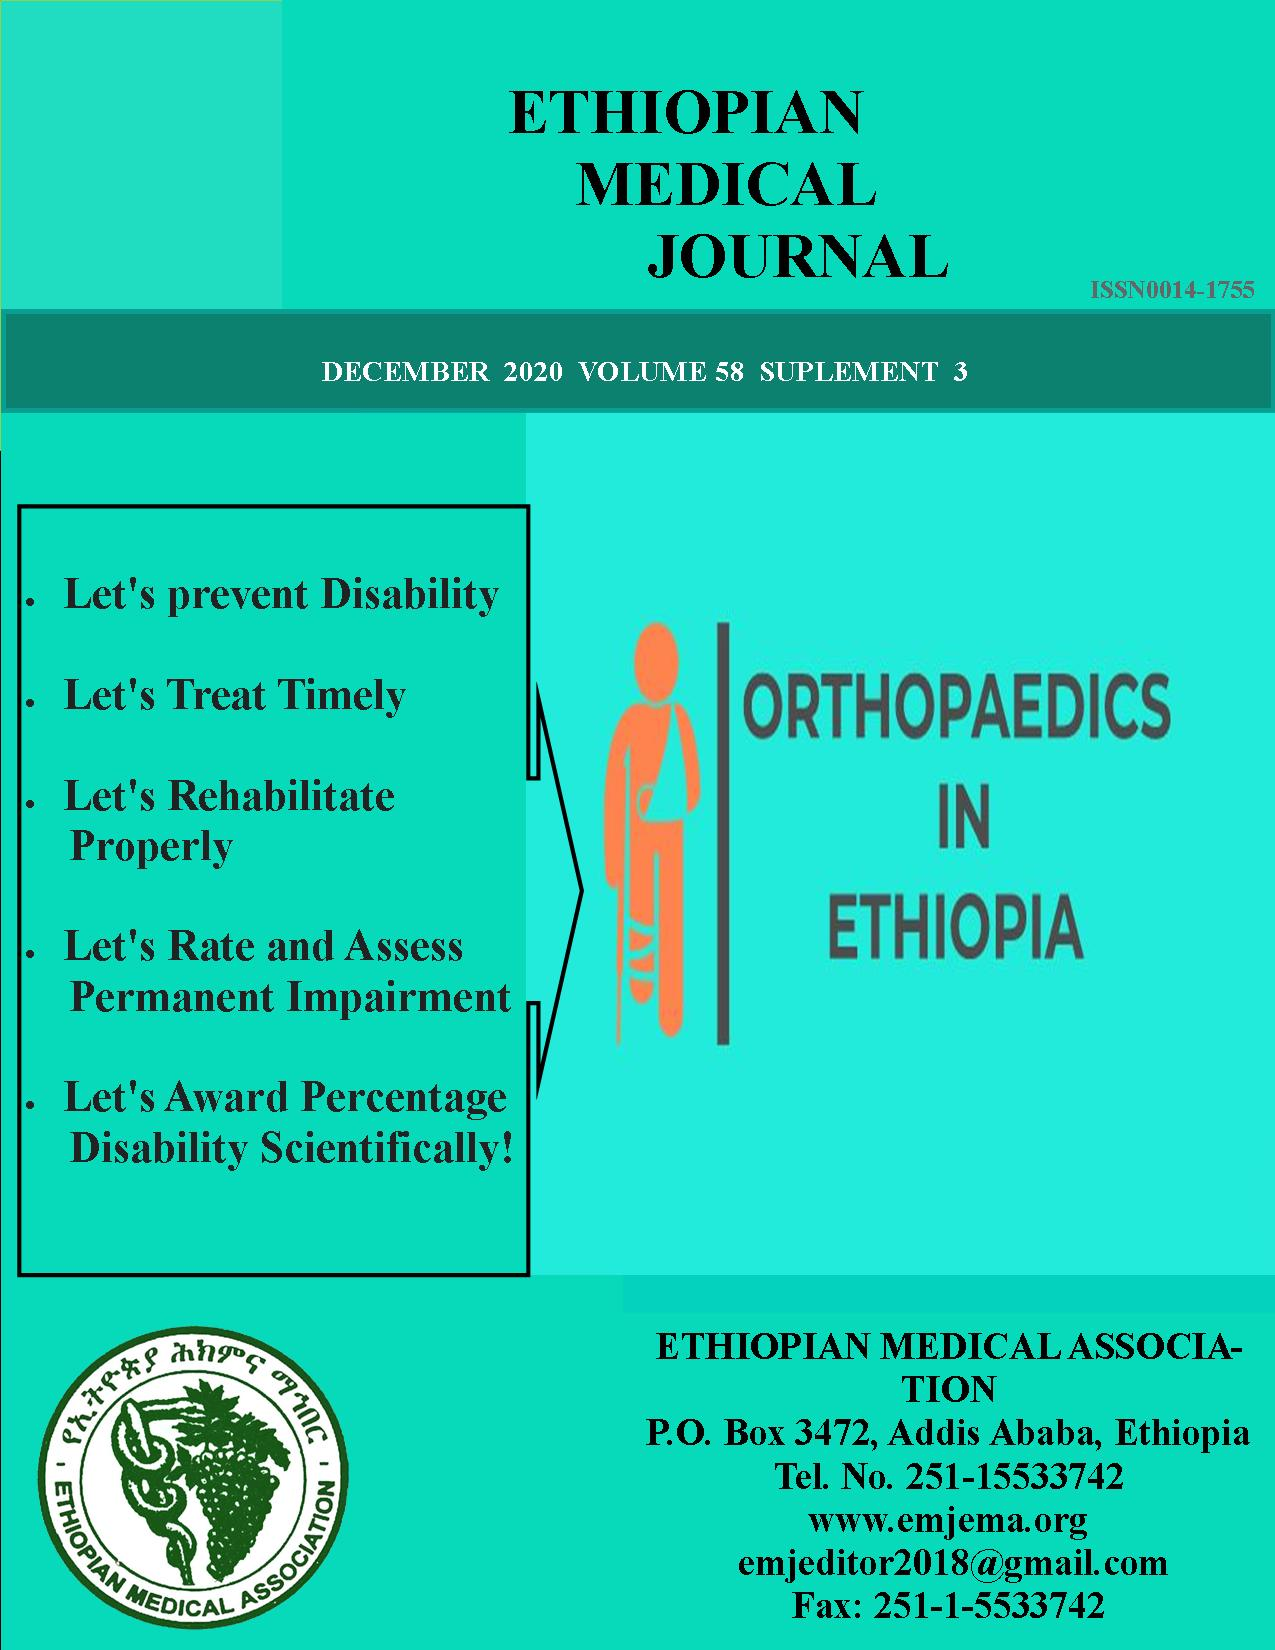 View Vol. 58 No. Supplement 03 (2020): ORTHOPEDICS IN ETHIOPIA